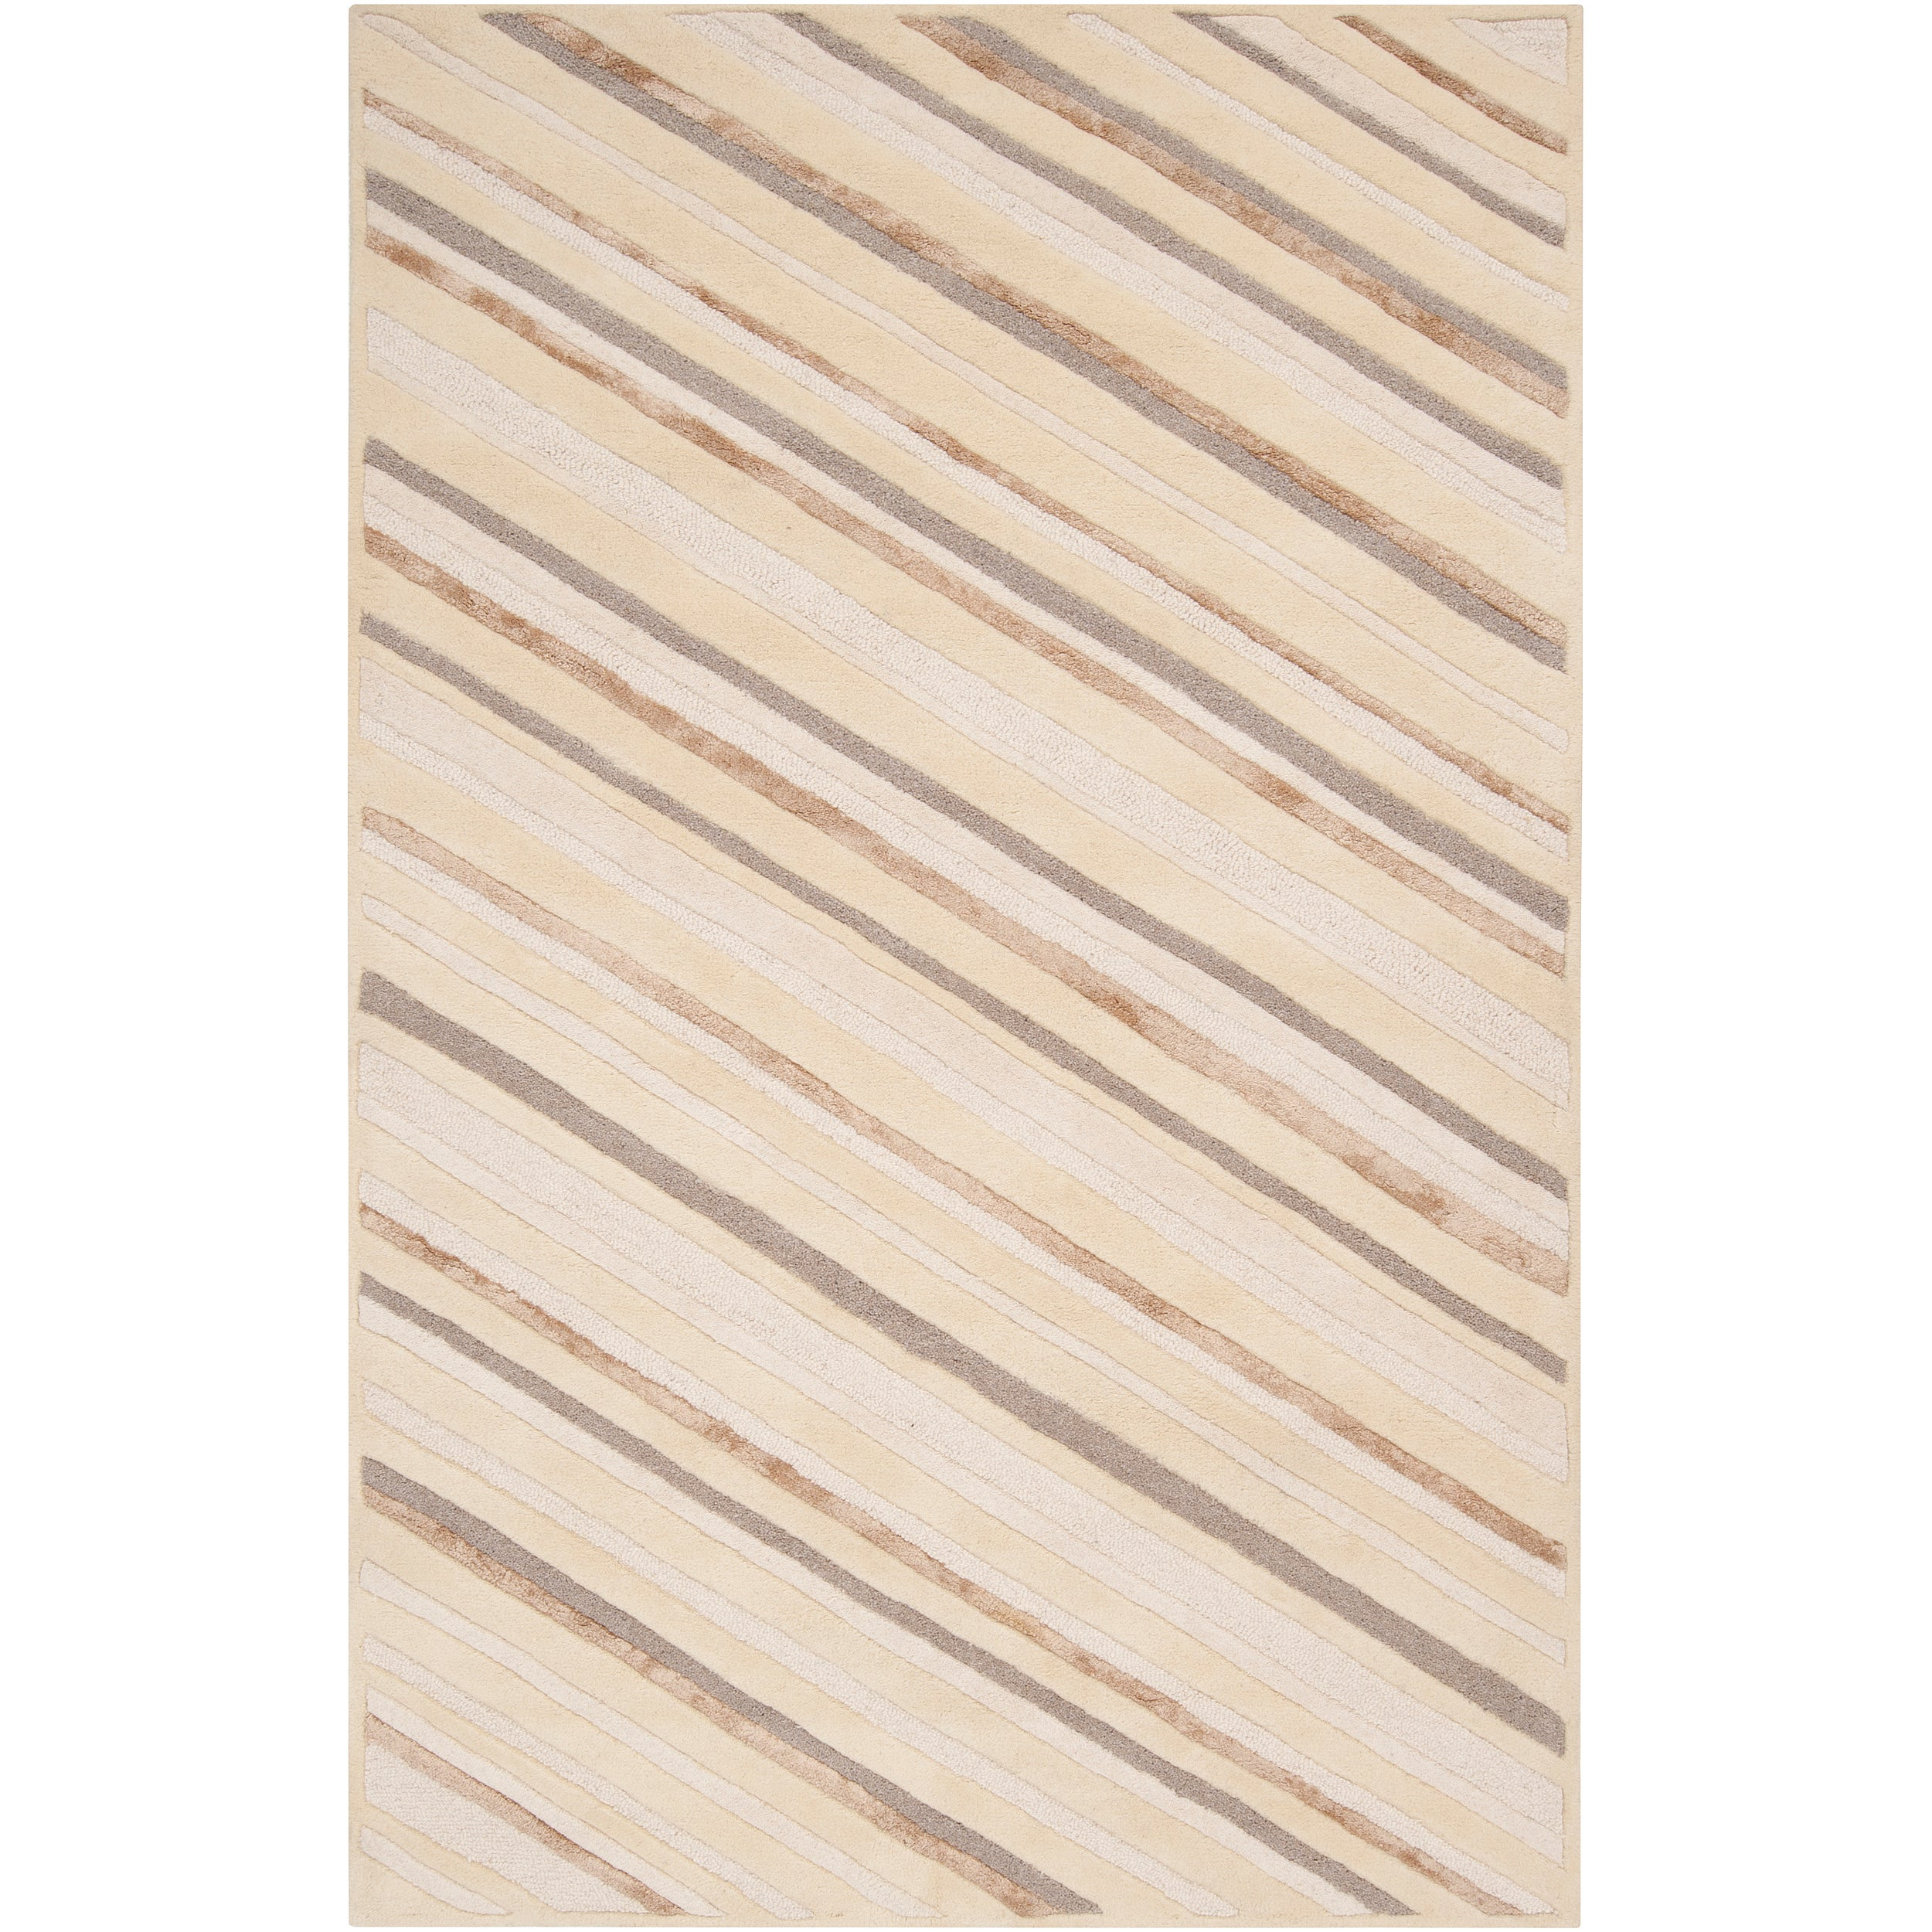 Candice Olson Hand-Tufted Green Cane Diagonal Stripes Abstract Wool Rug (5' x 8')